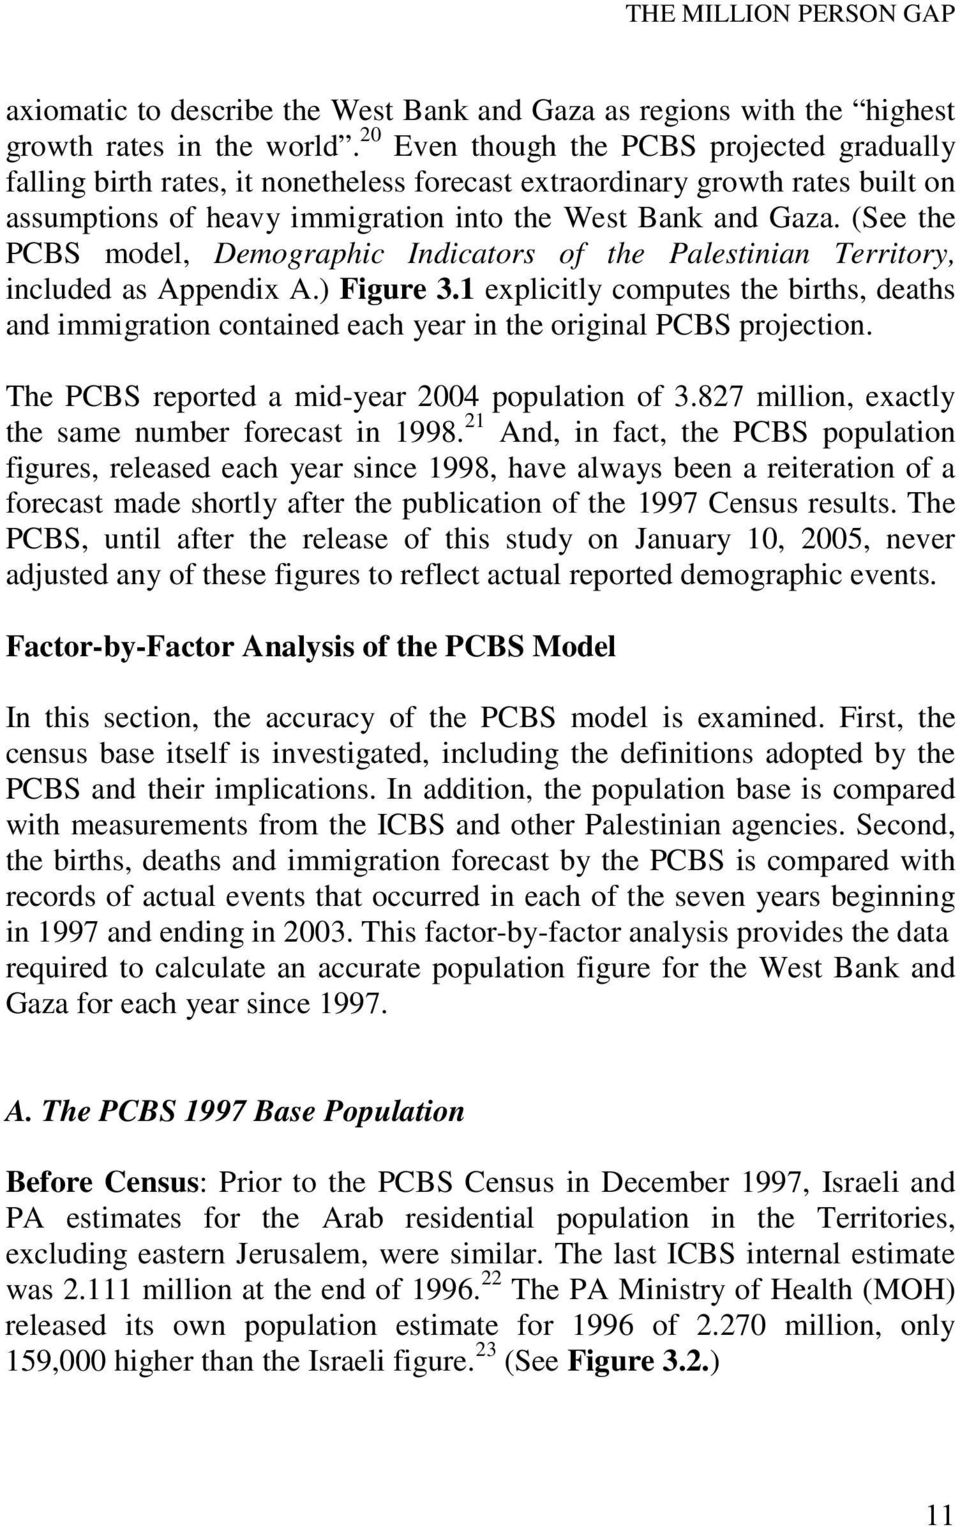 (See the PCBS model, Demographic Indicators of the Palestinian Territory, included as Appendix A.) Figure 3.